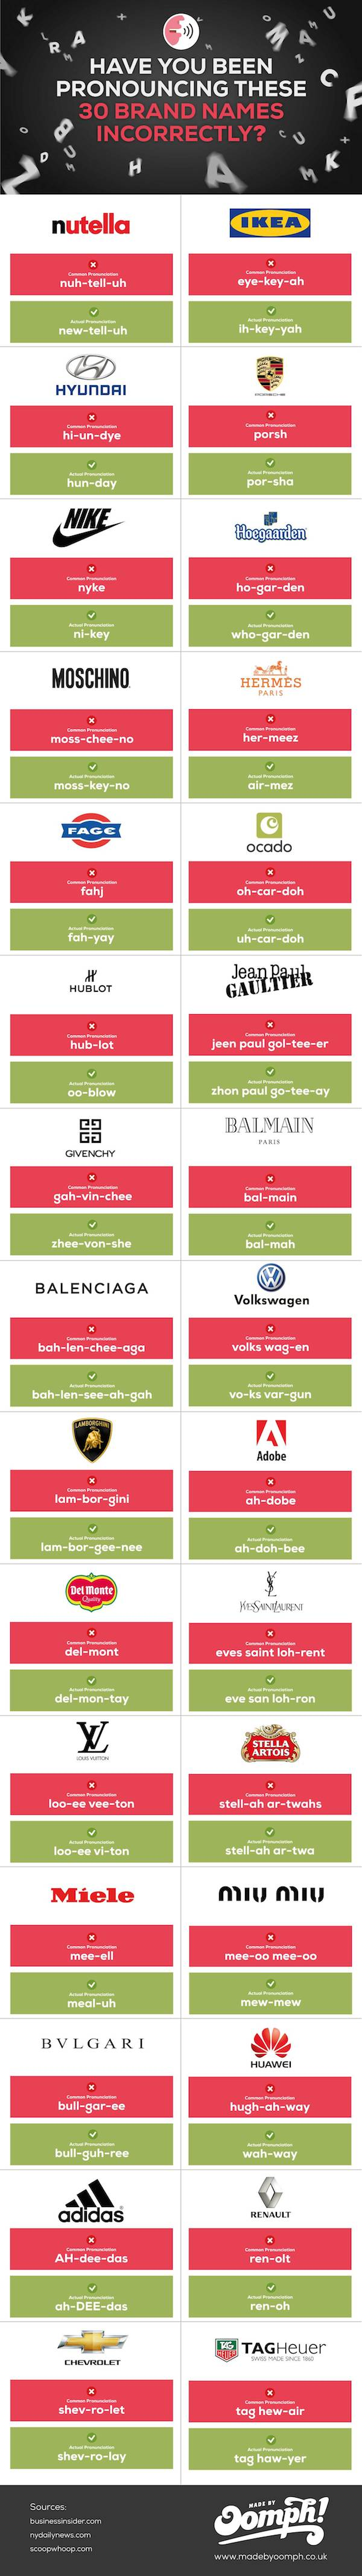 hard-to-pronounce-brand-names-infographic